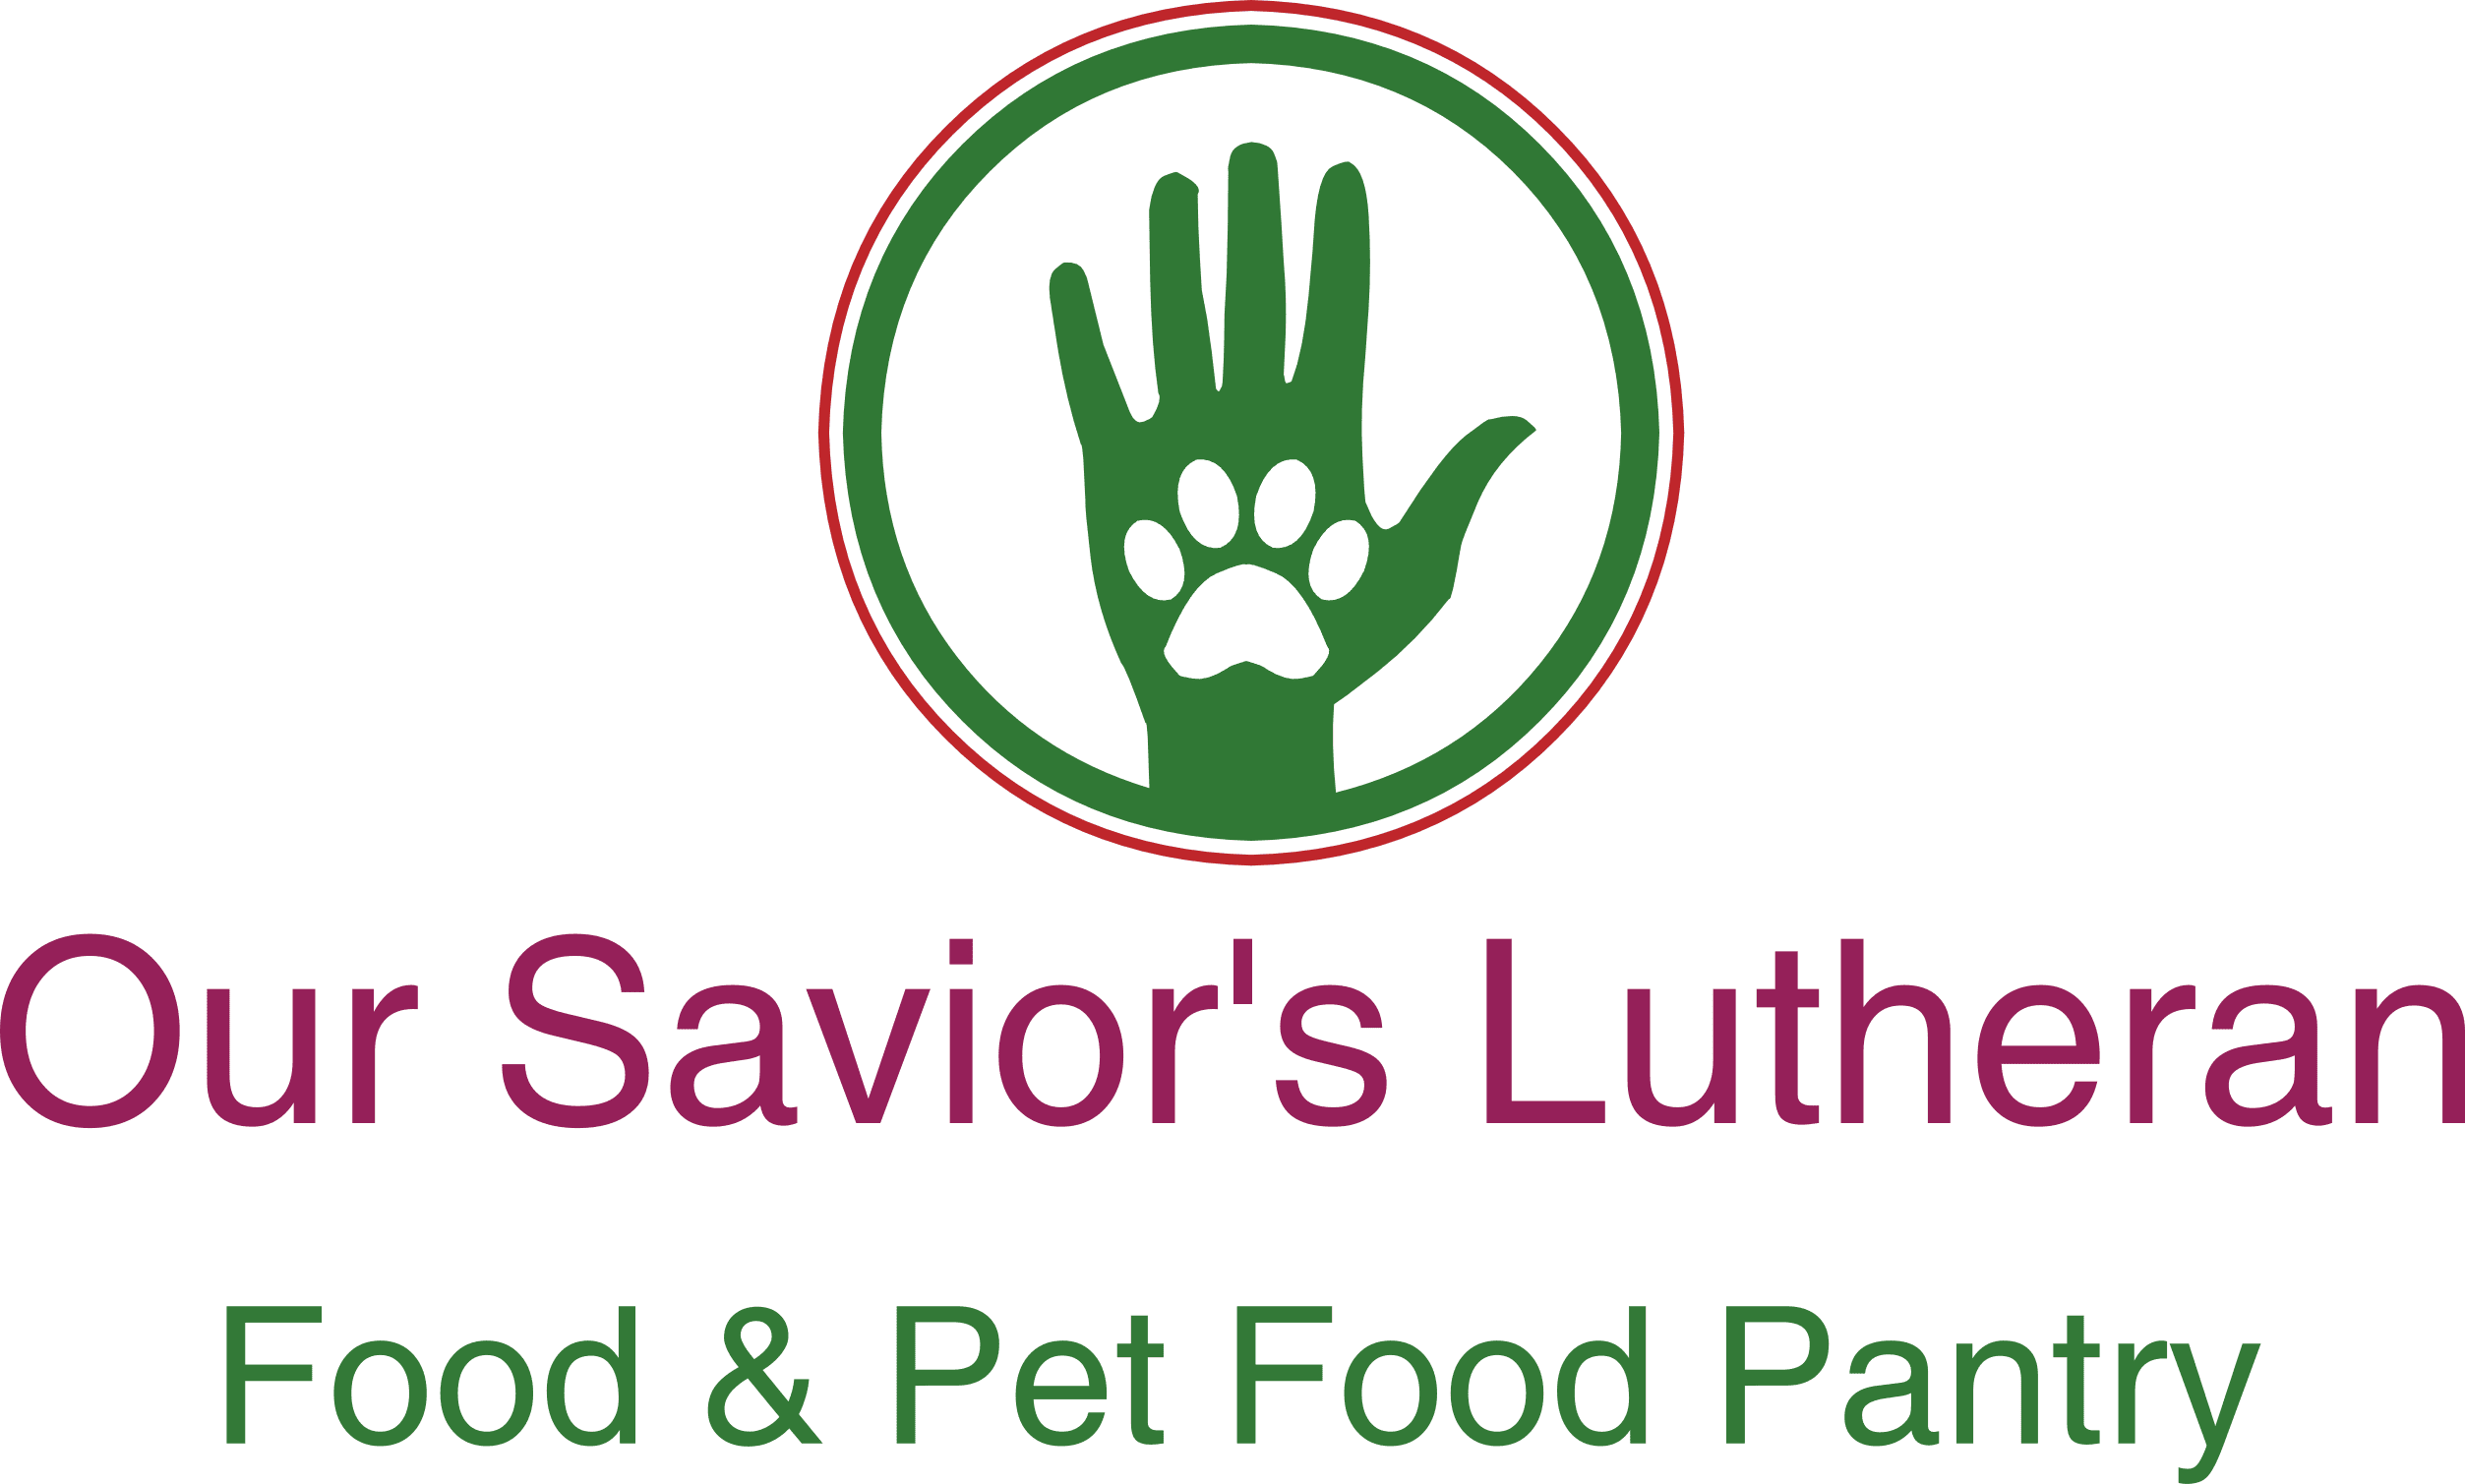 Our Savior's Lutheran Food & Pet Food Pantry